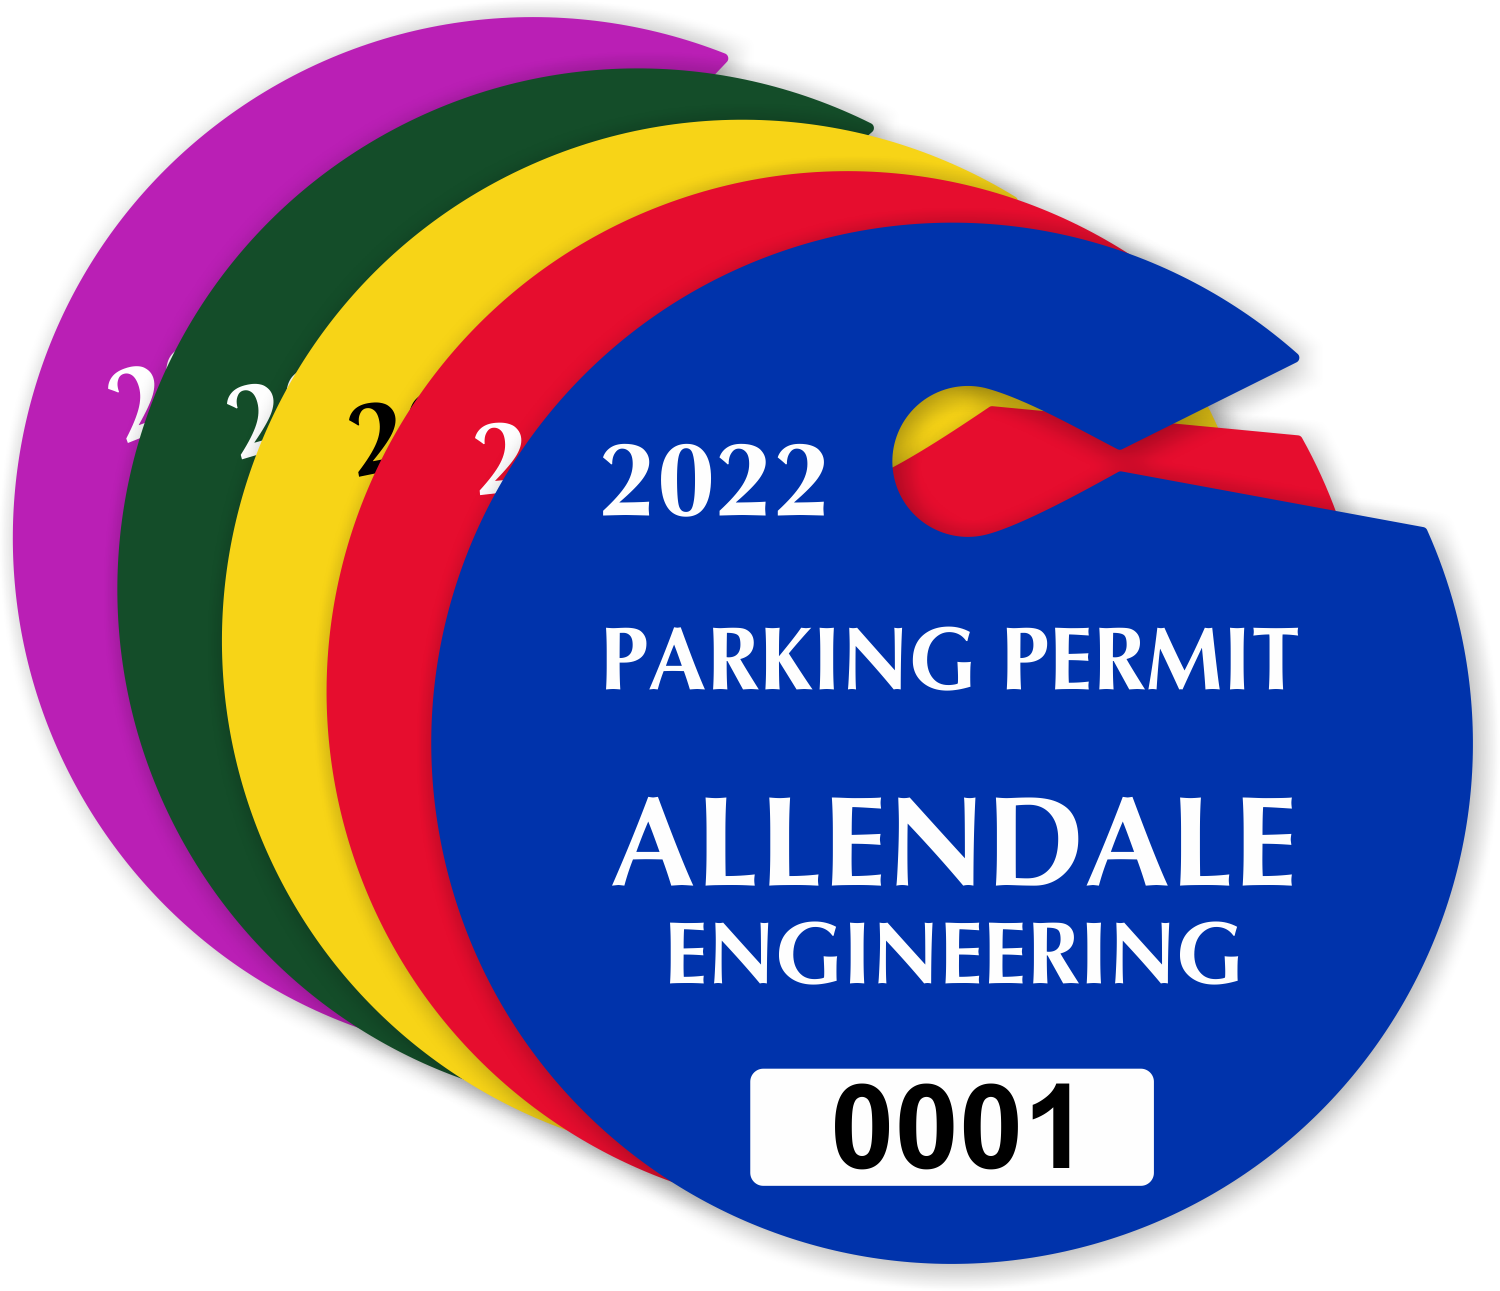 Circular Custom Parking Permit Hang Tags For Rear View Mirror